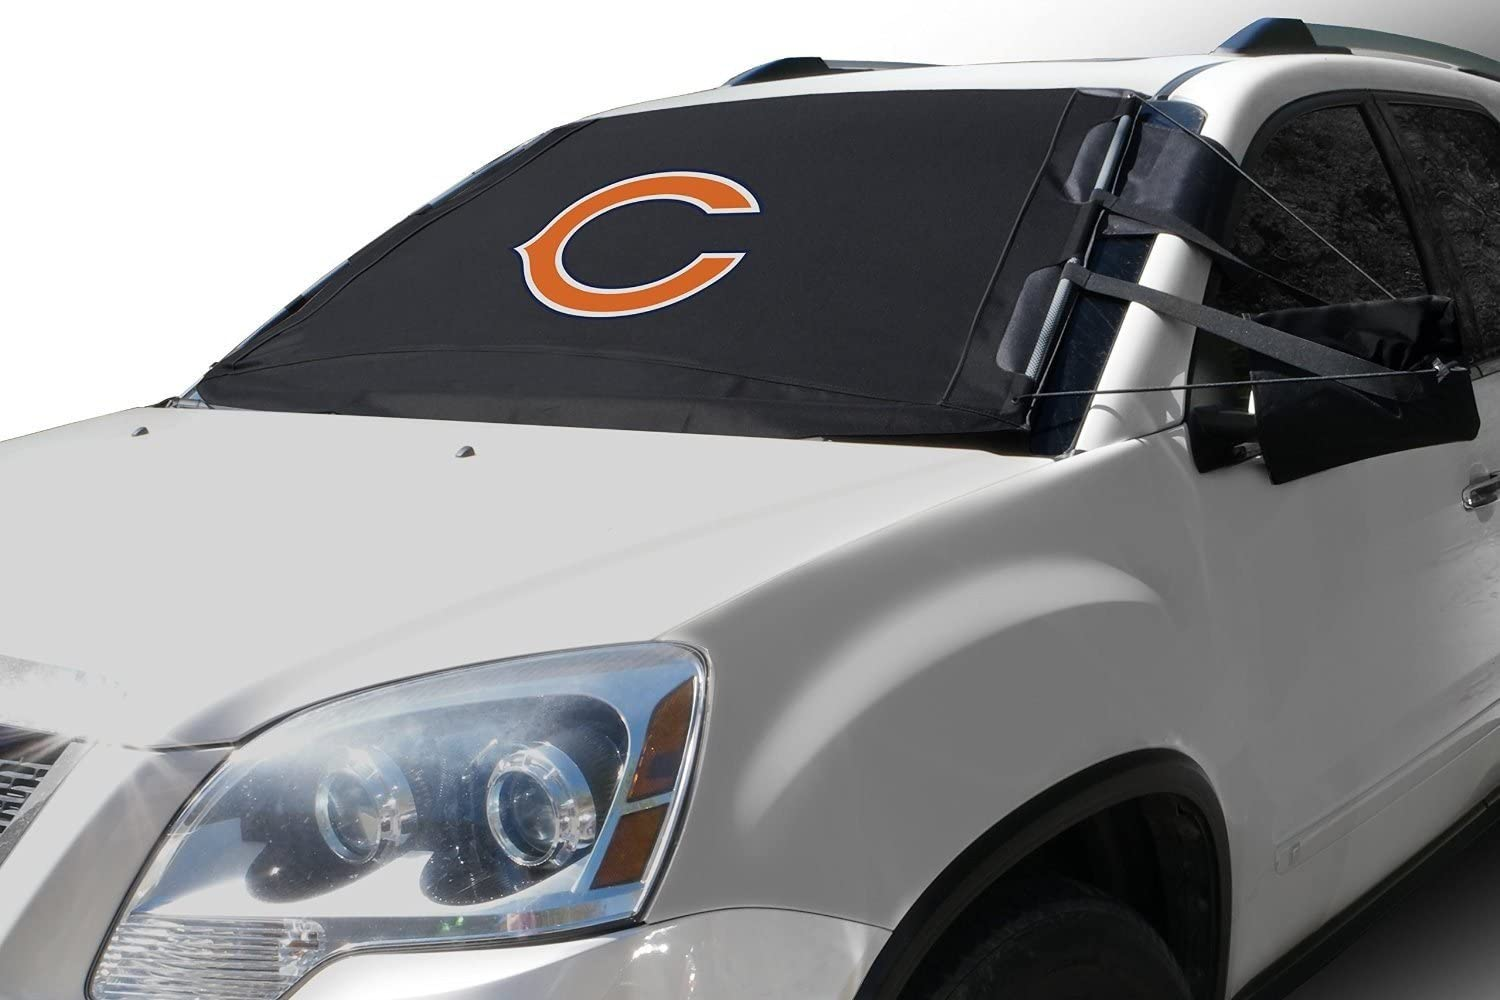 NFL Frost Guard Windshield Cover for Ice and Snow, Chicago Bears | Standard Size Car Windshield Cover, Black | Fits Most Compact Cars, Sedans, Small Trucks, SUVs – 60 x 40 Inches